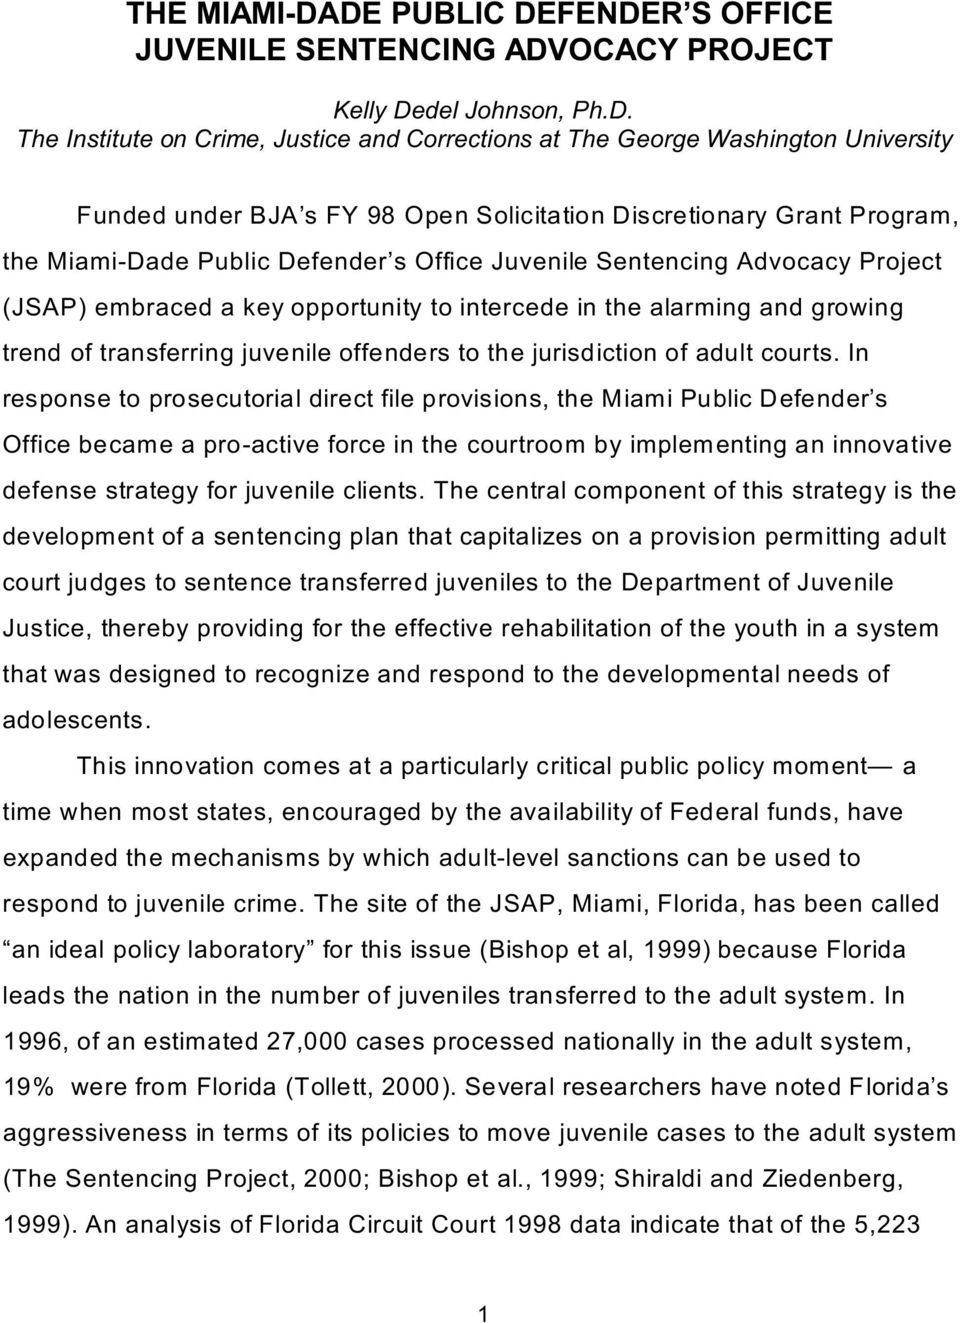 98 Open Solicitation Discretionary Grant Program, the Miami-Dade Public Defender s Office Juvenile Sentencing Advocacy Project (JSAP) embraced a key opportunity to intercede in the alarming and